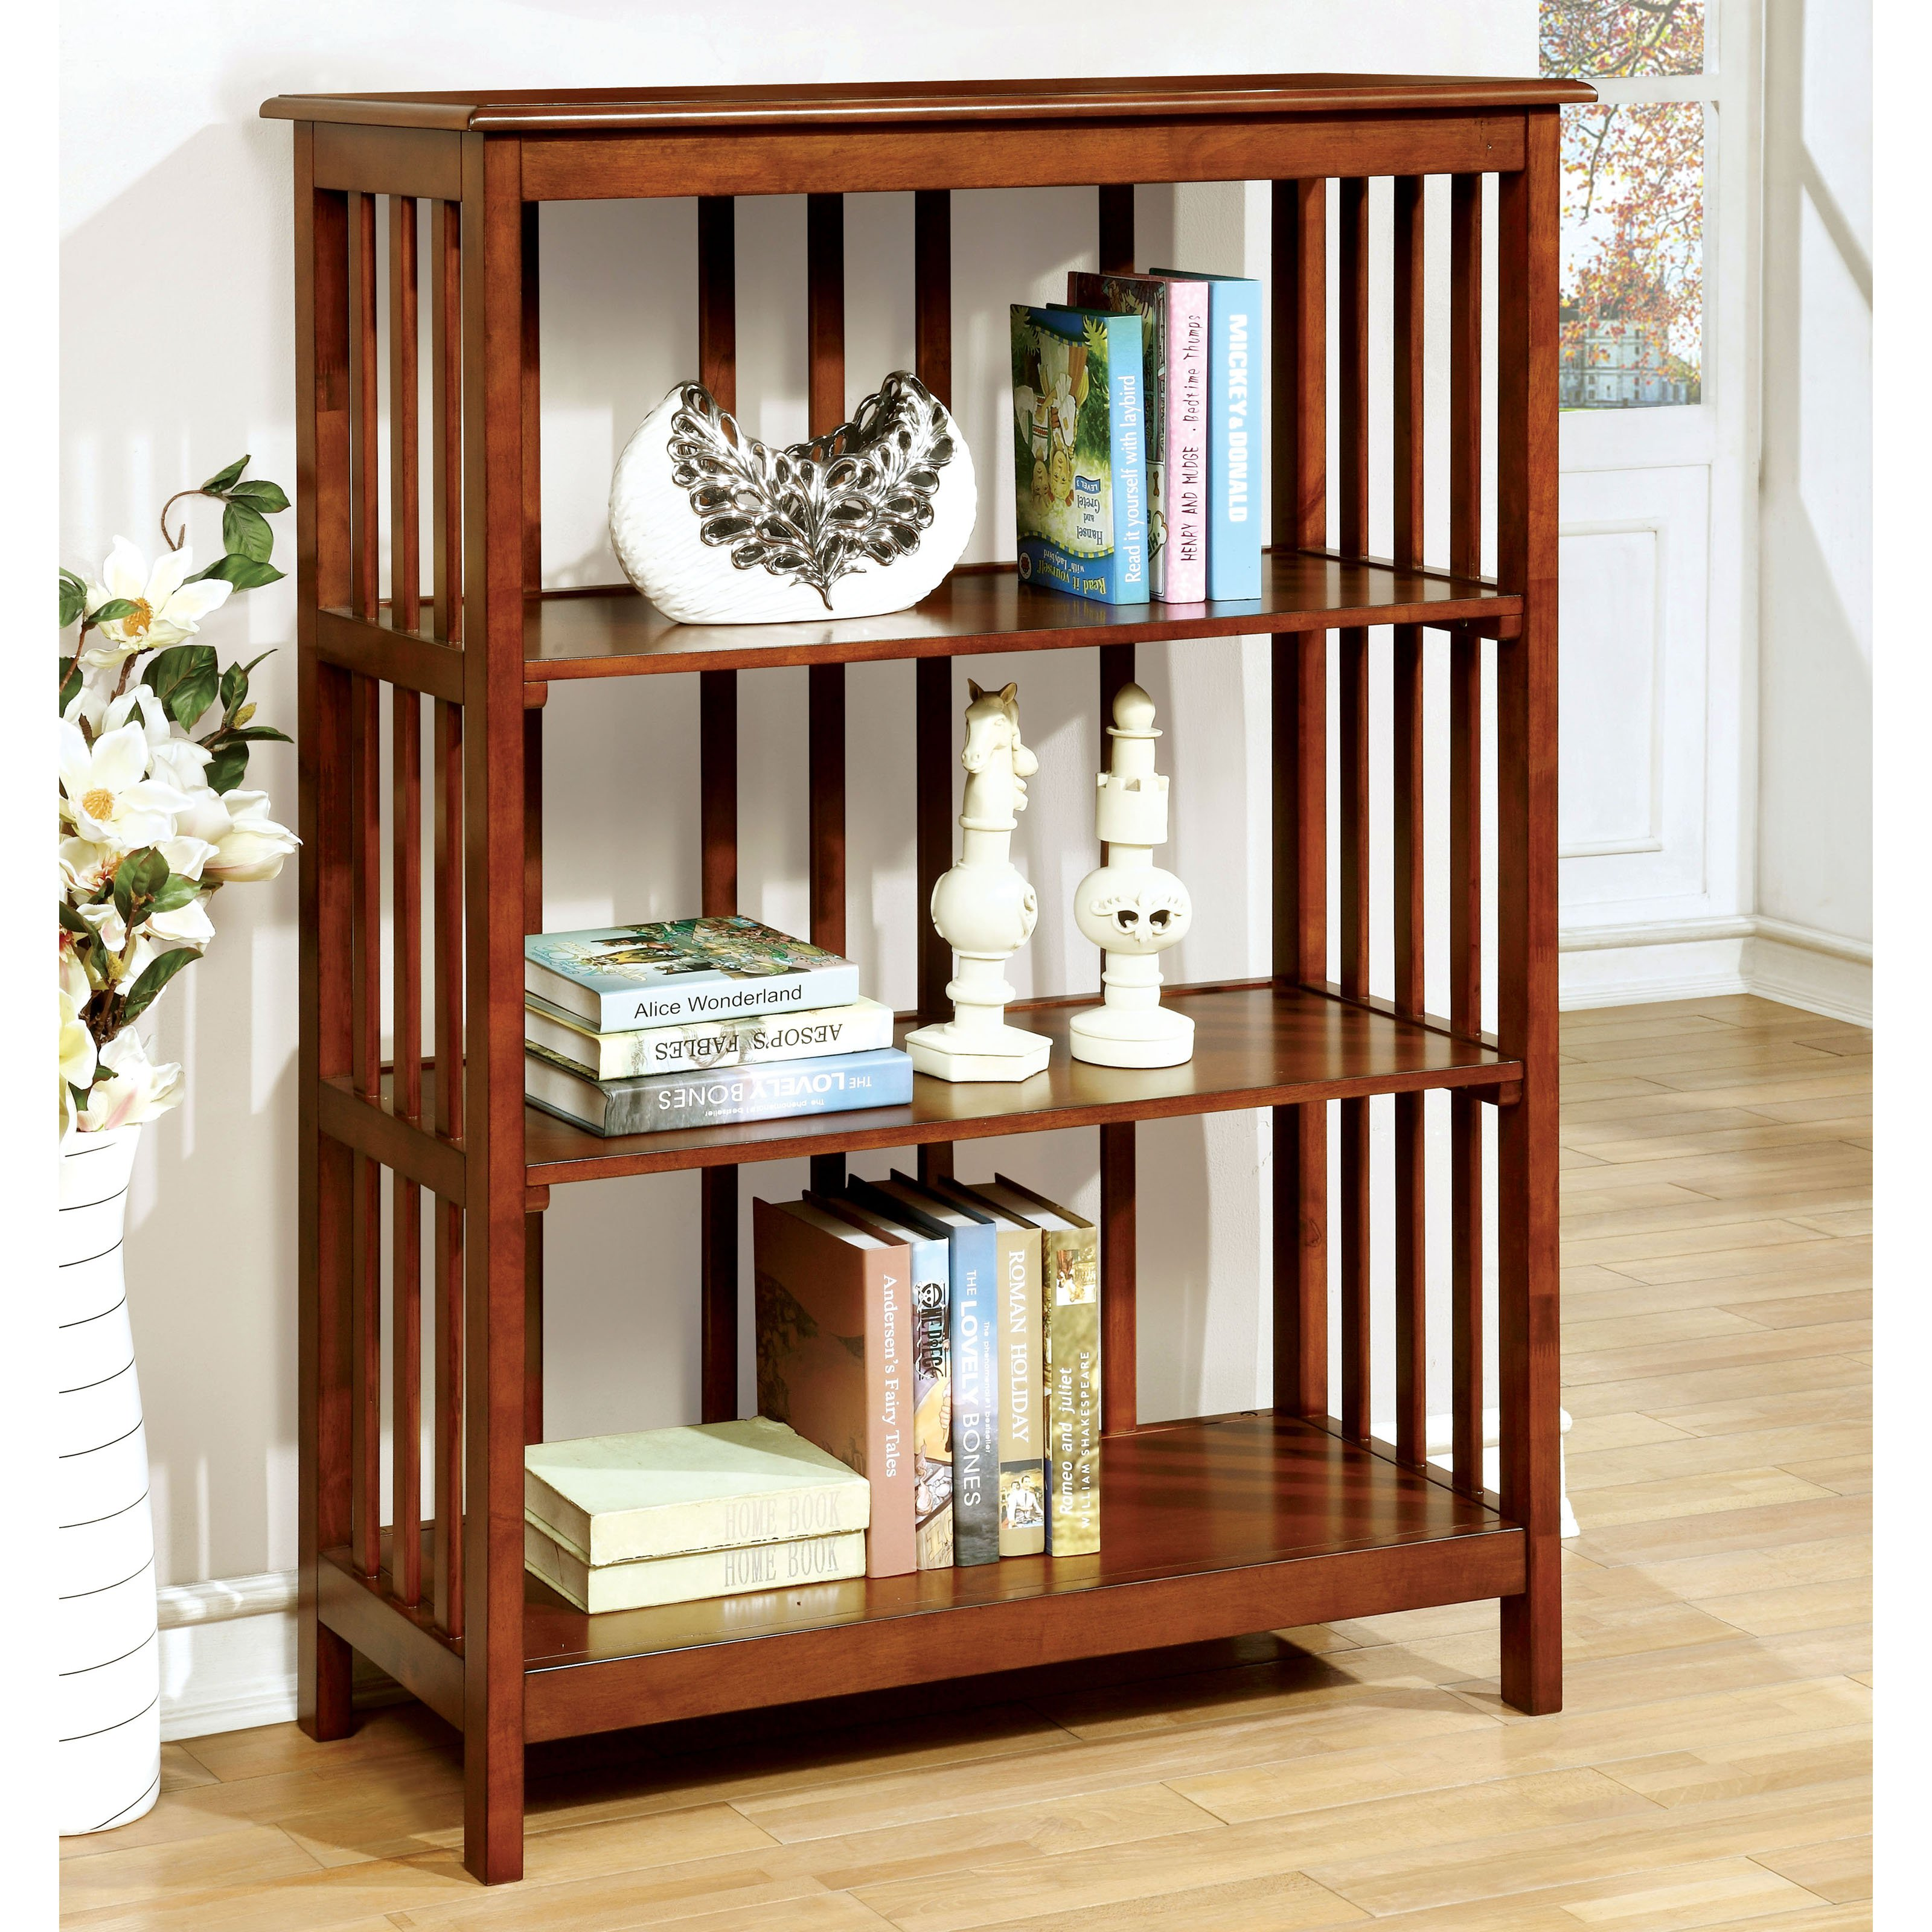 Furniture of America Miranda 4-Tier Mission Bookcase